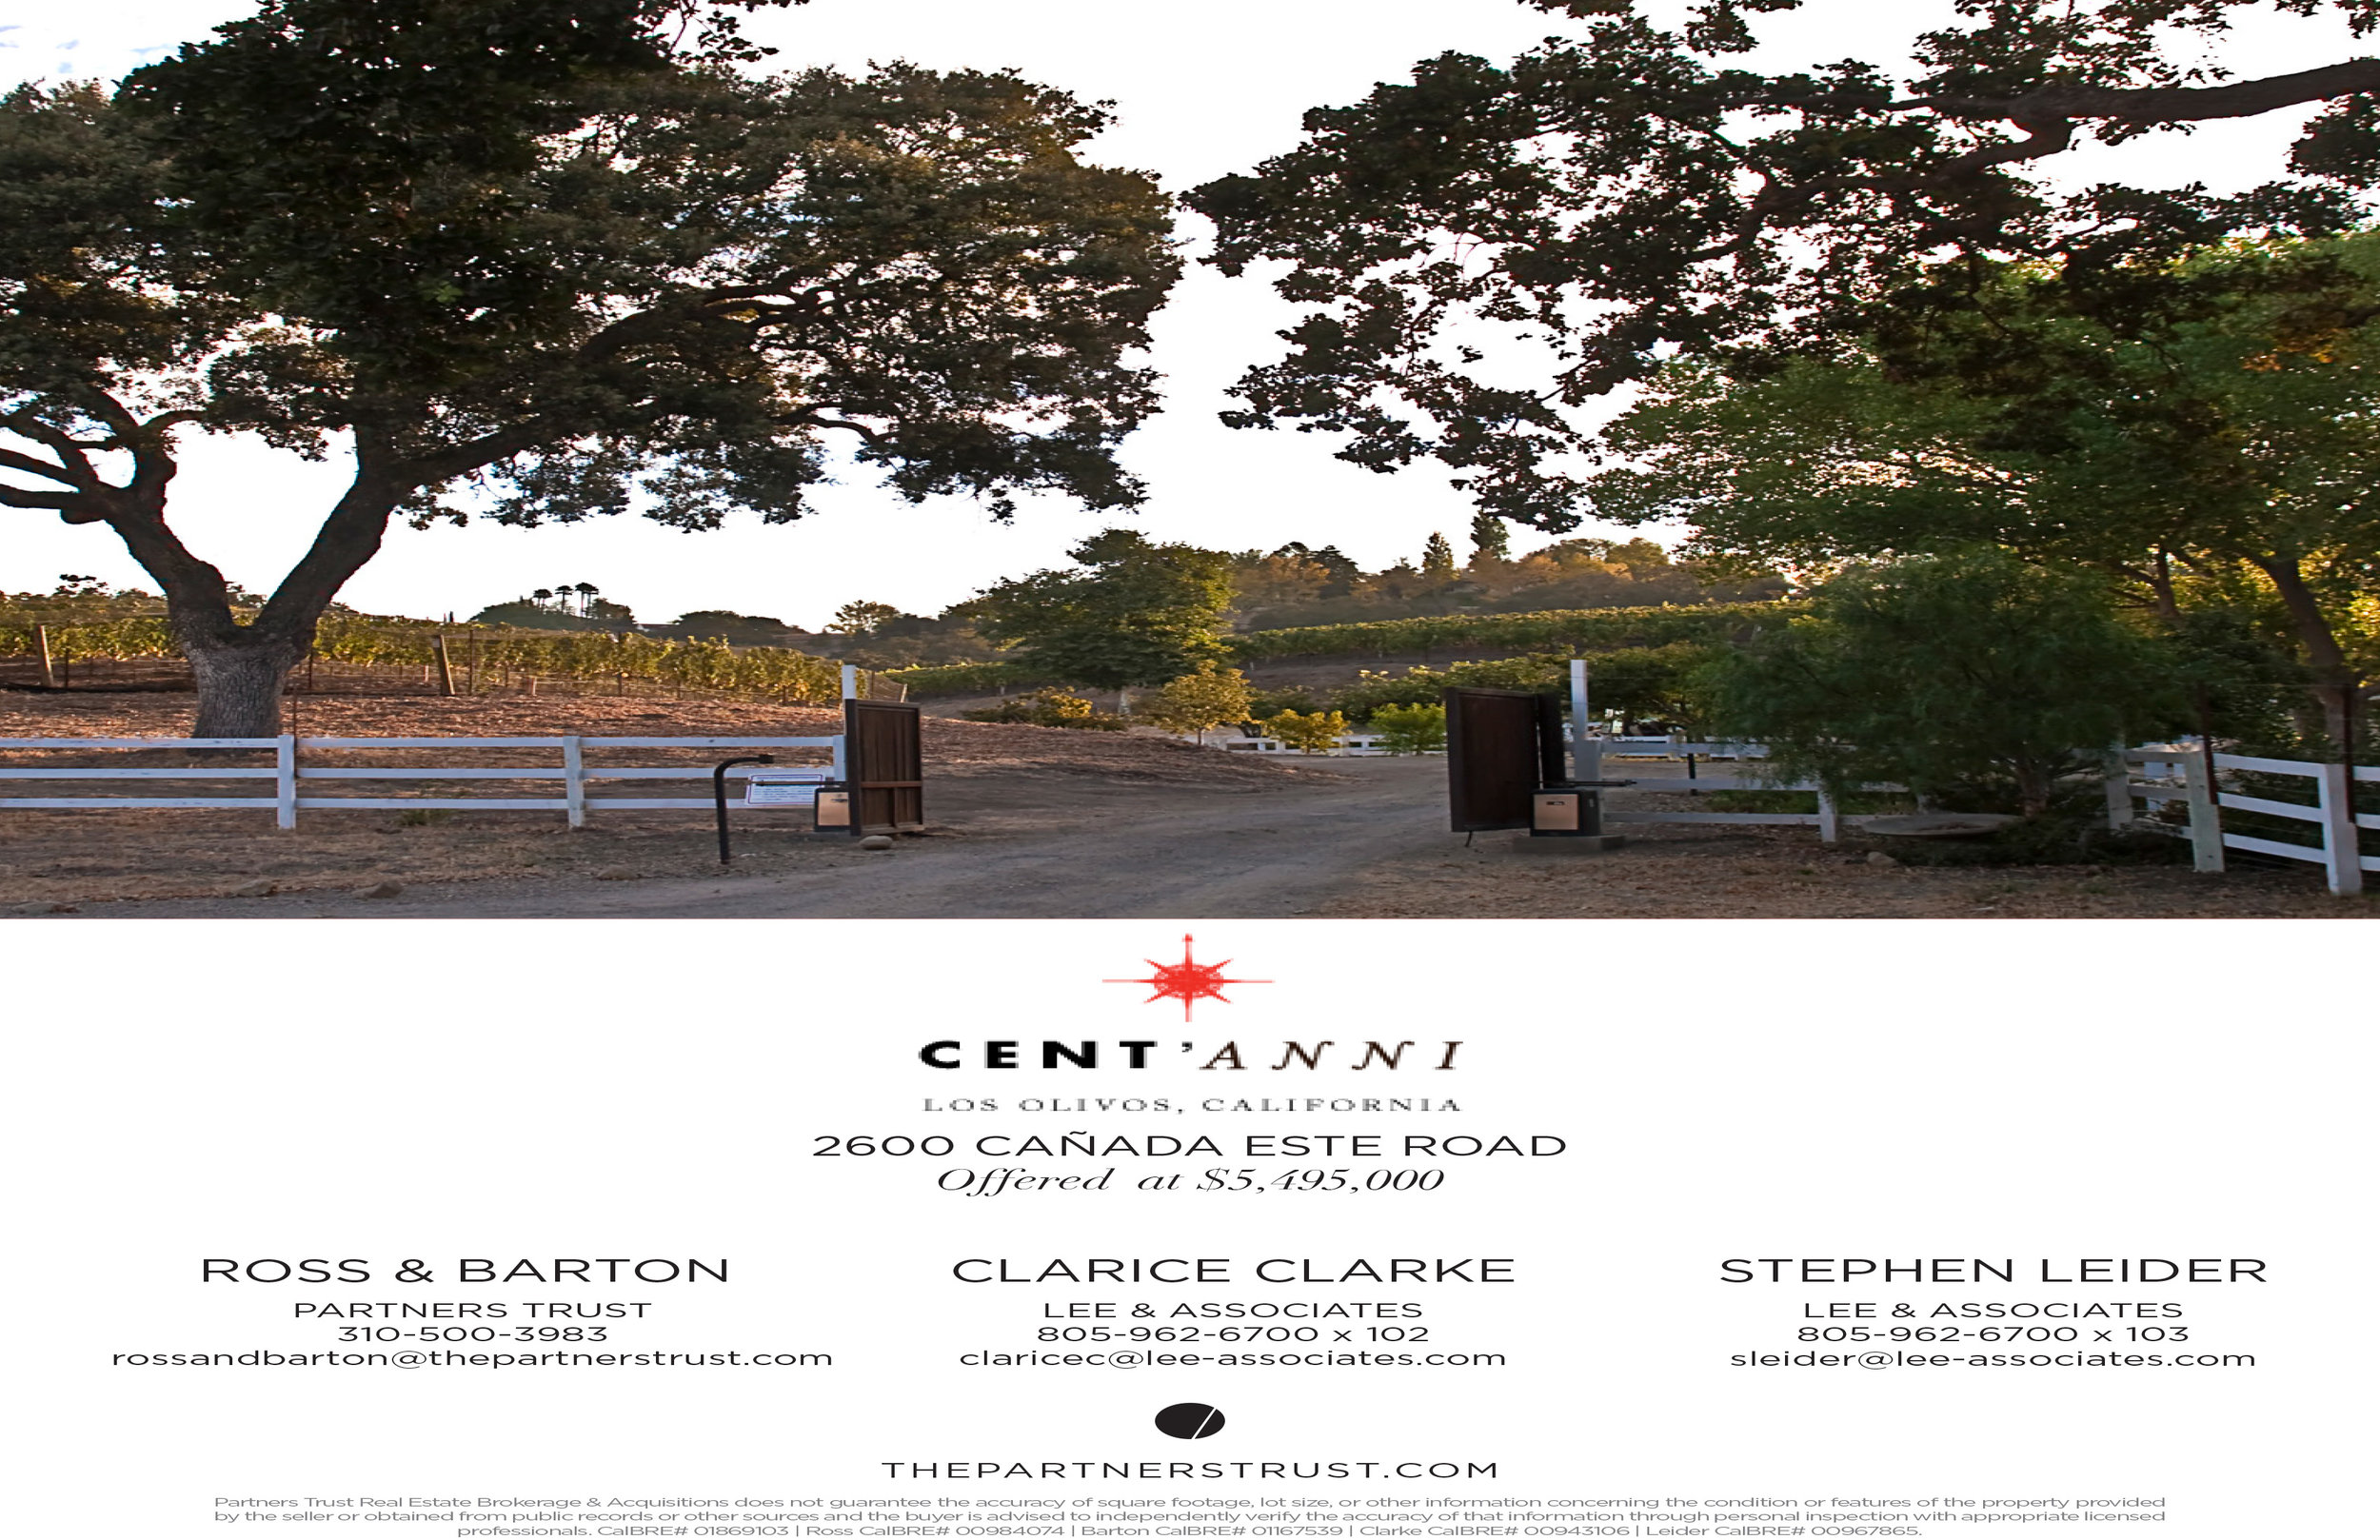 Brochure_Centanni-Vineyard-V5-11.jpg